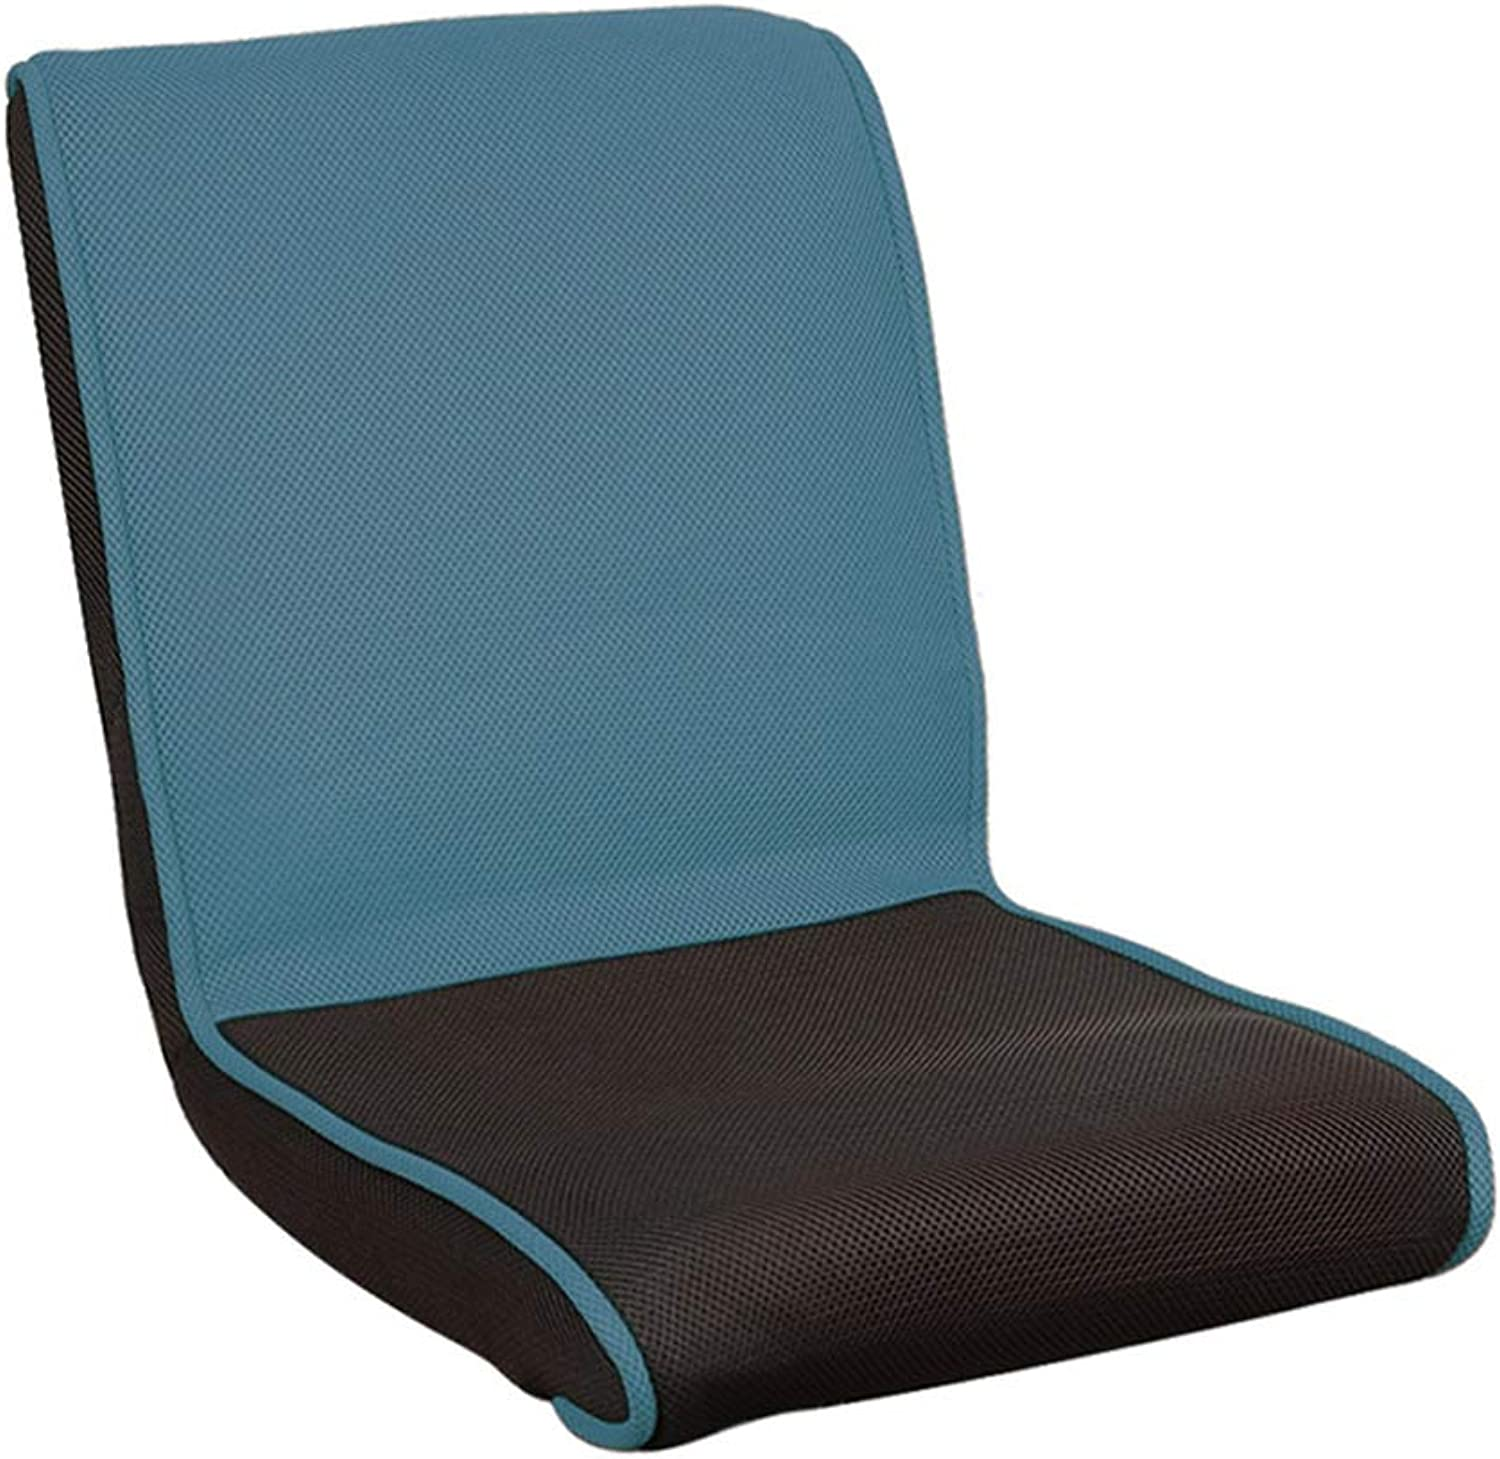 GY Floor Chair, Fold Lazy Sofa, Portable Single Back Support, Home Reading, Meditation, Game Multi-Function Leisure Cushion Seat (4 colors) (color   bluee)